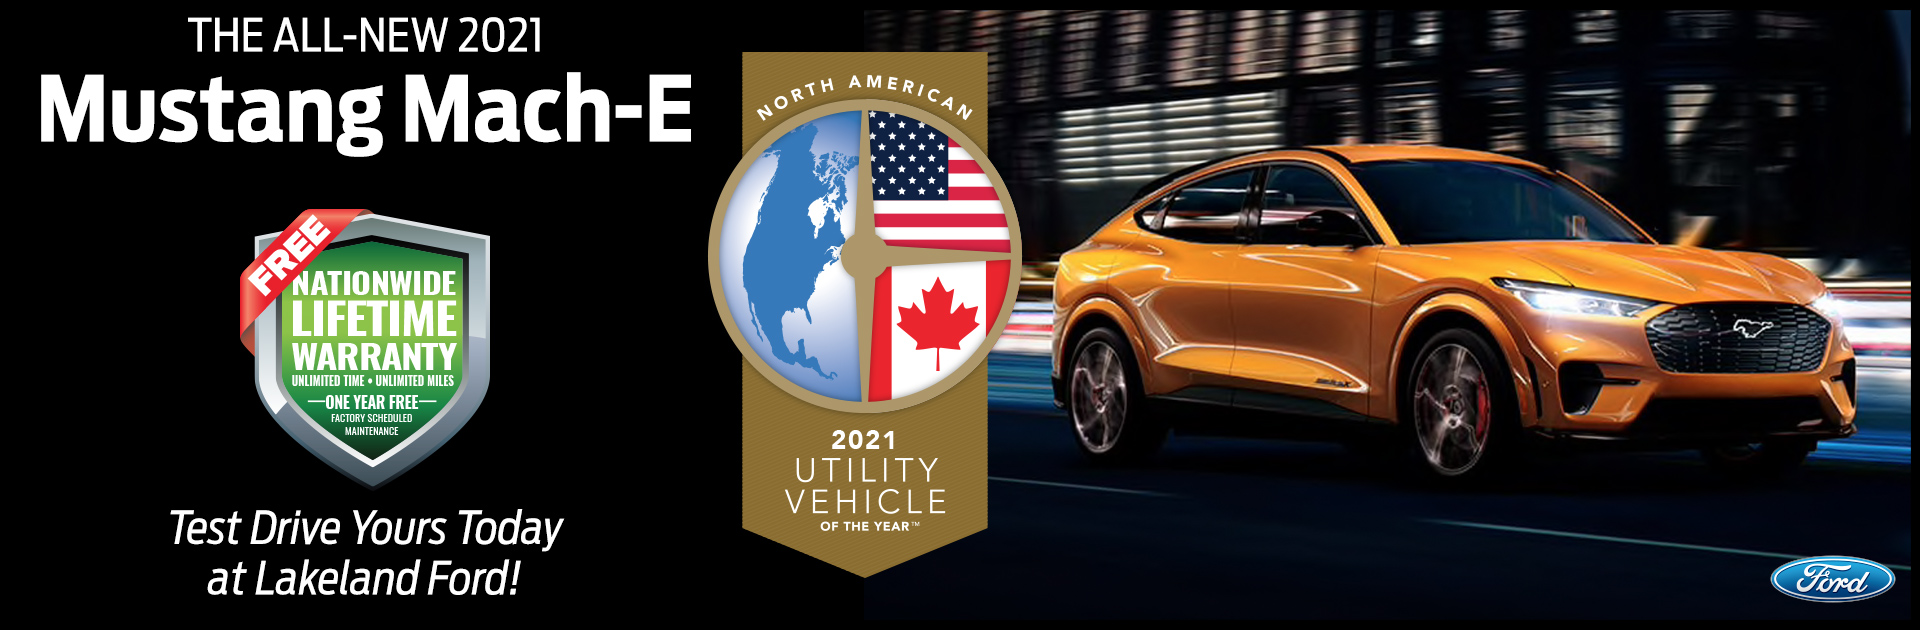 2021 Utility Vehcile of the Year - FORD Mach-e